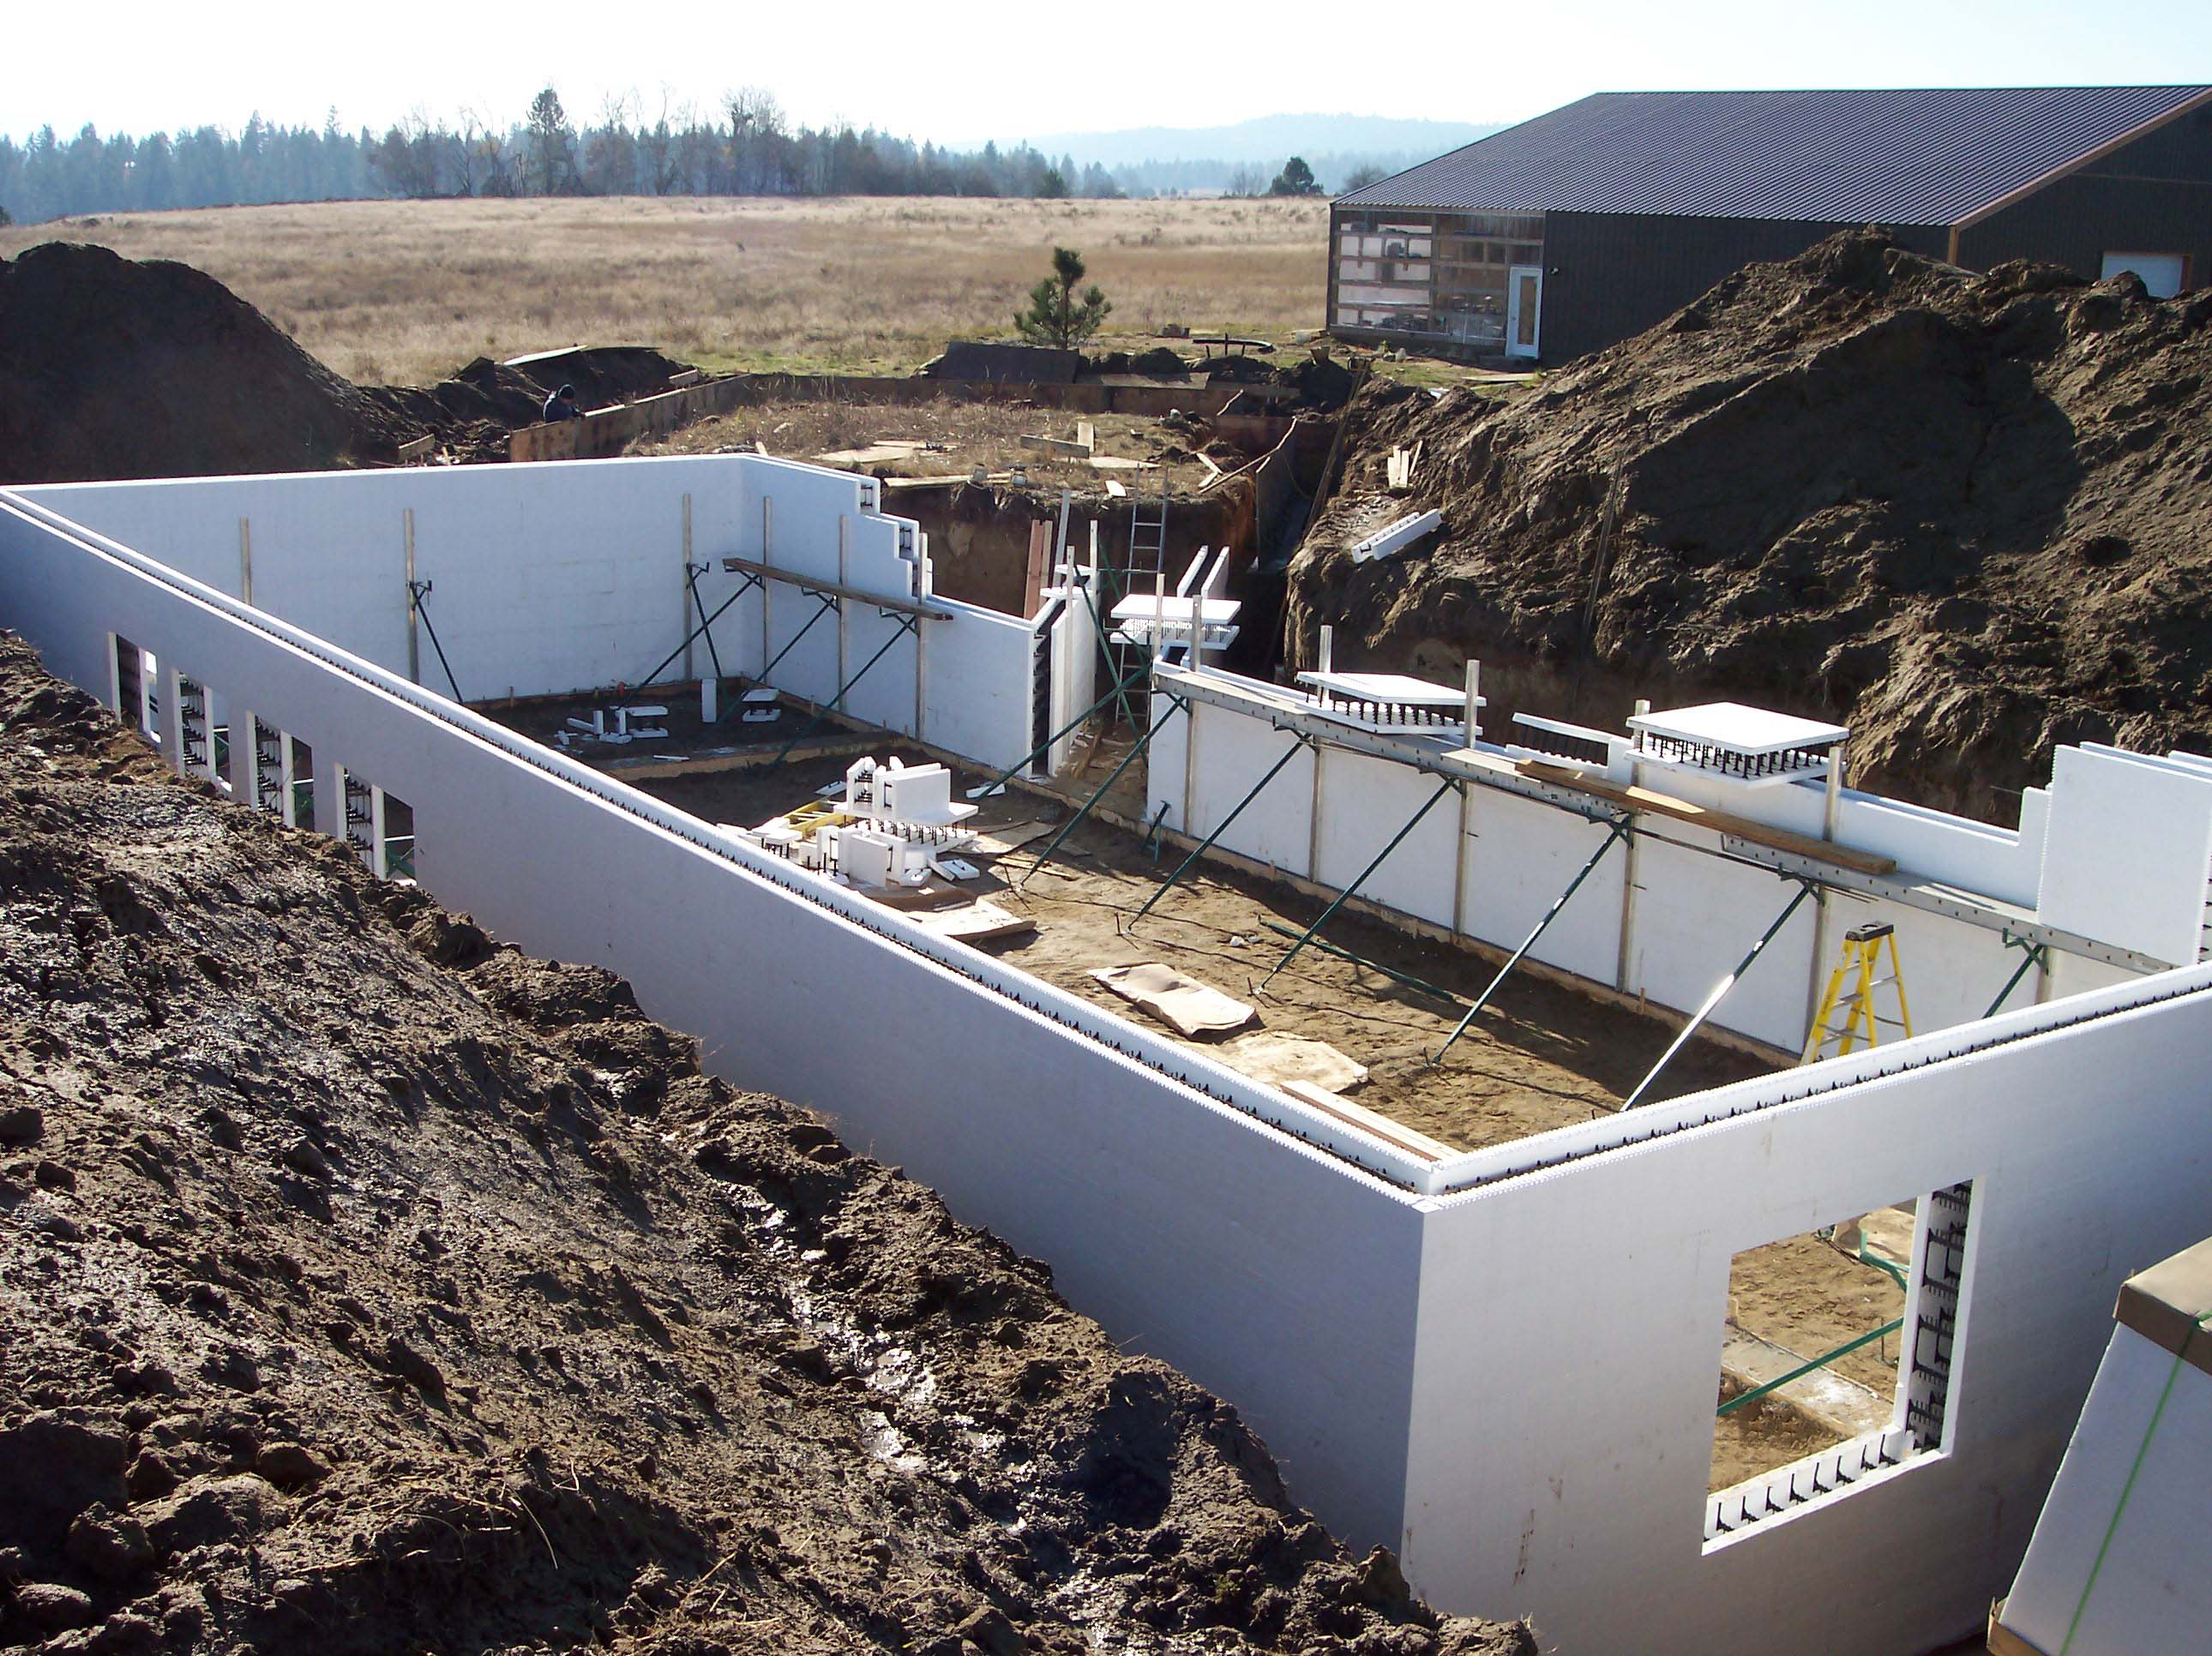 One And A Half Story House Floor Plans Why Build An Icf Basement With Buildblock Icfs